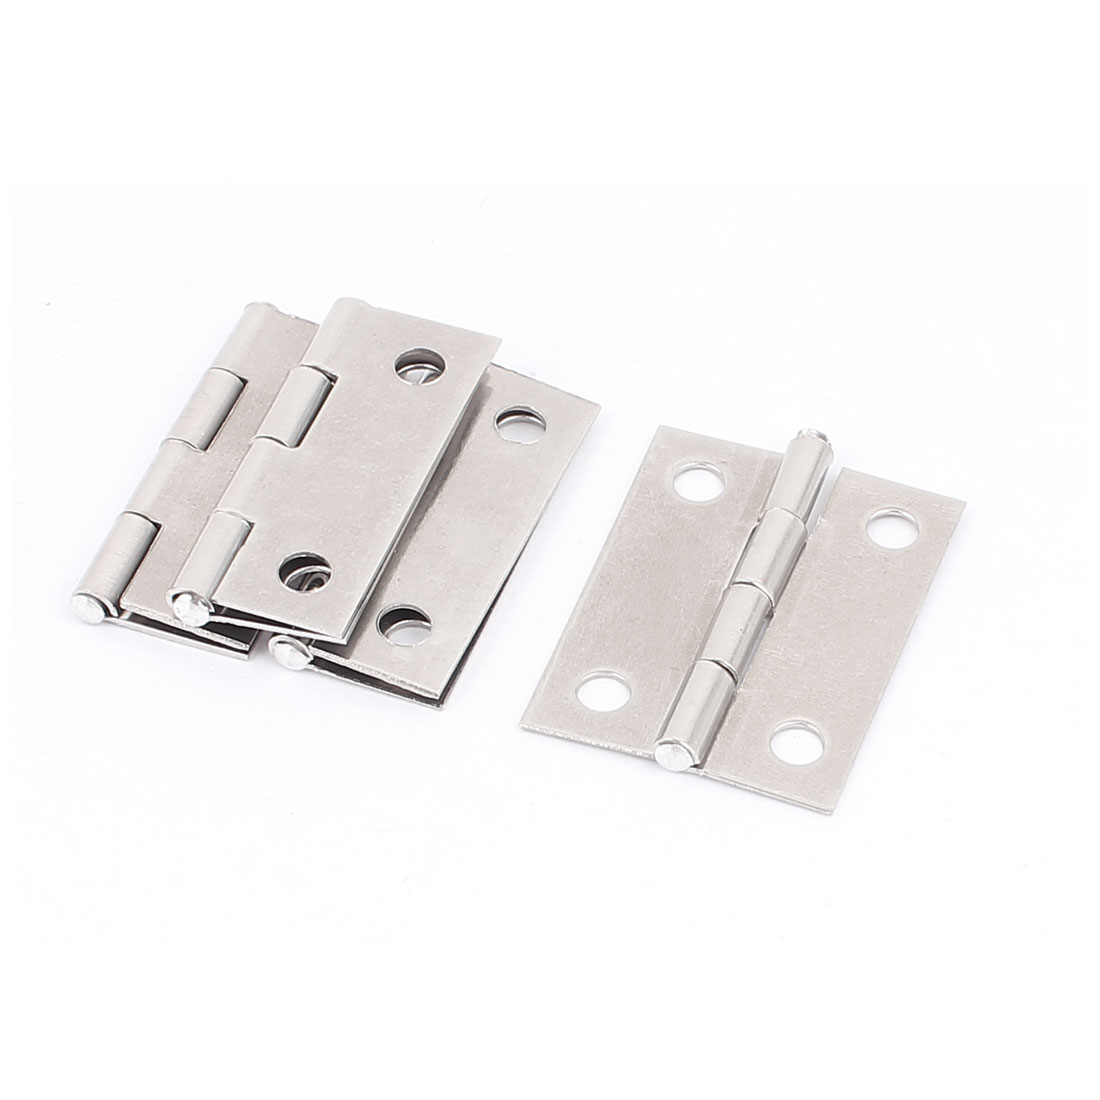 "1.5"" Long Drawer Fixing Stainless Steel Butt Hinge Silver Tone 4 Pcs"